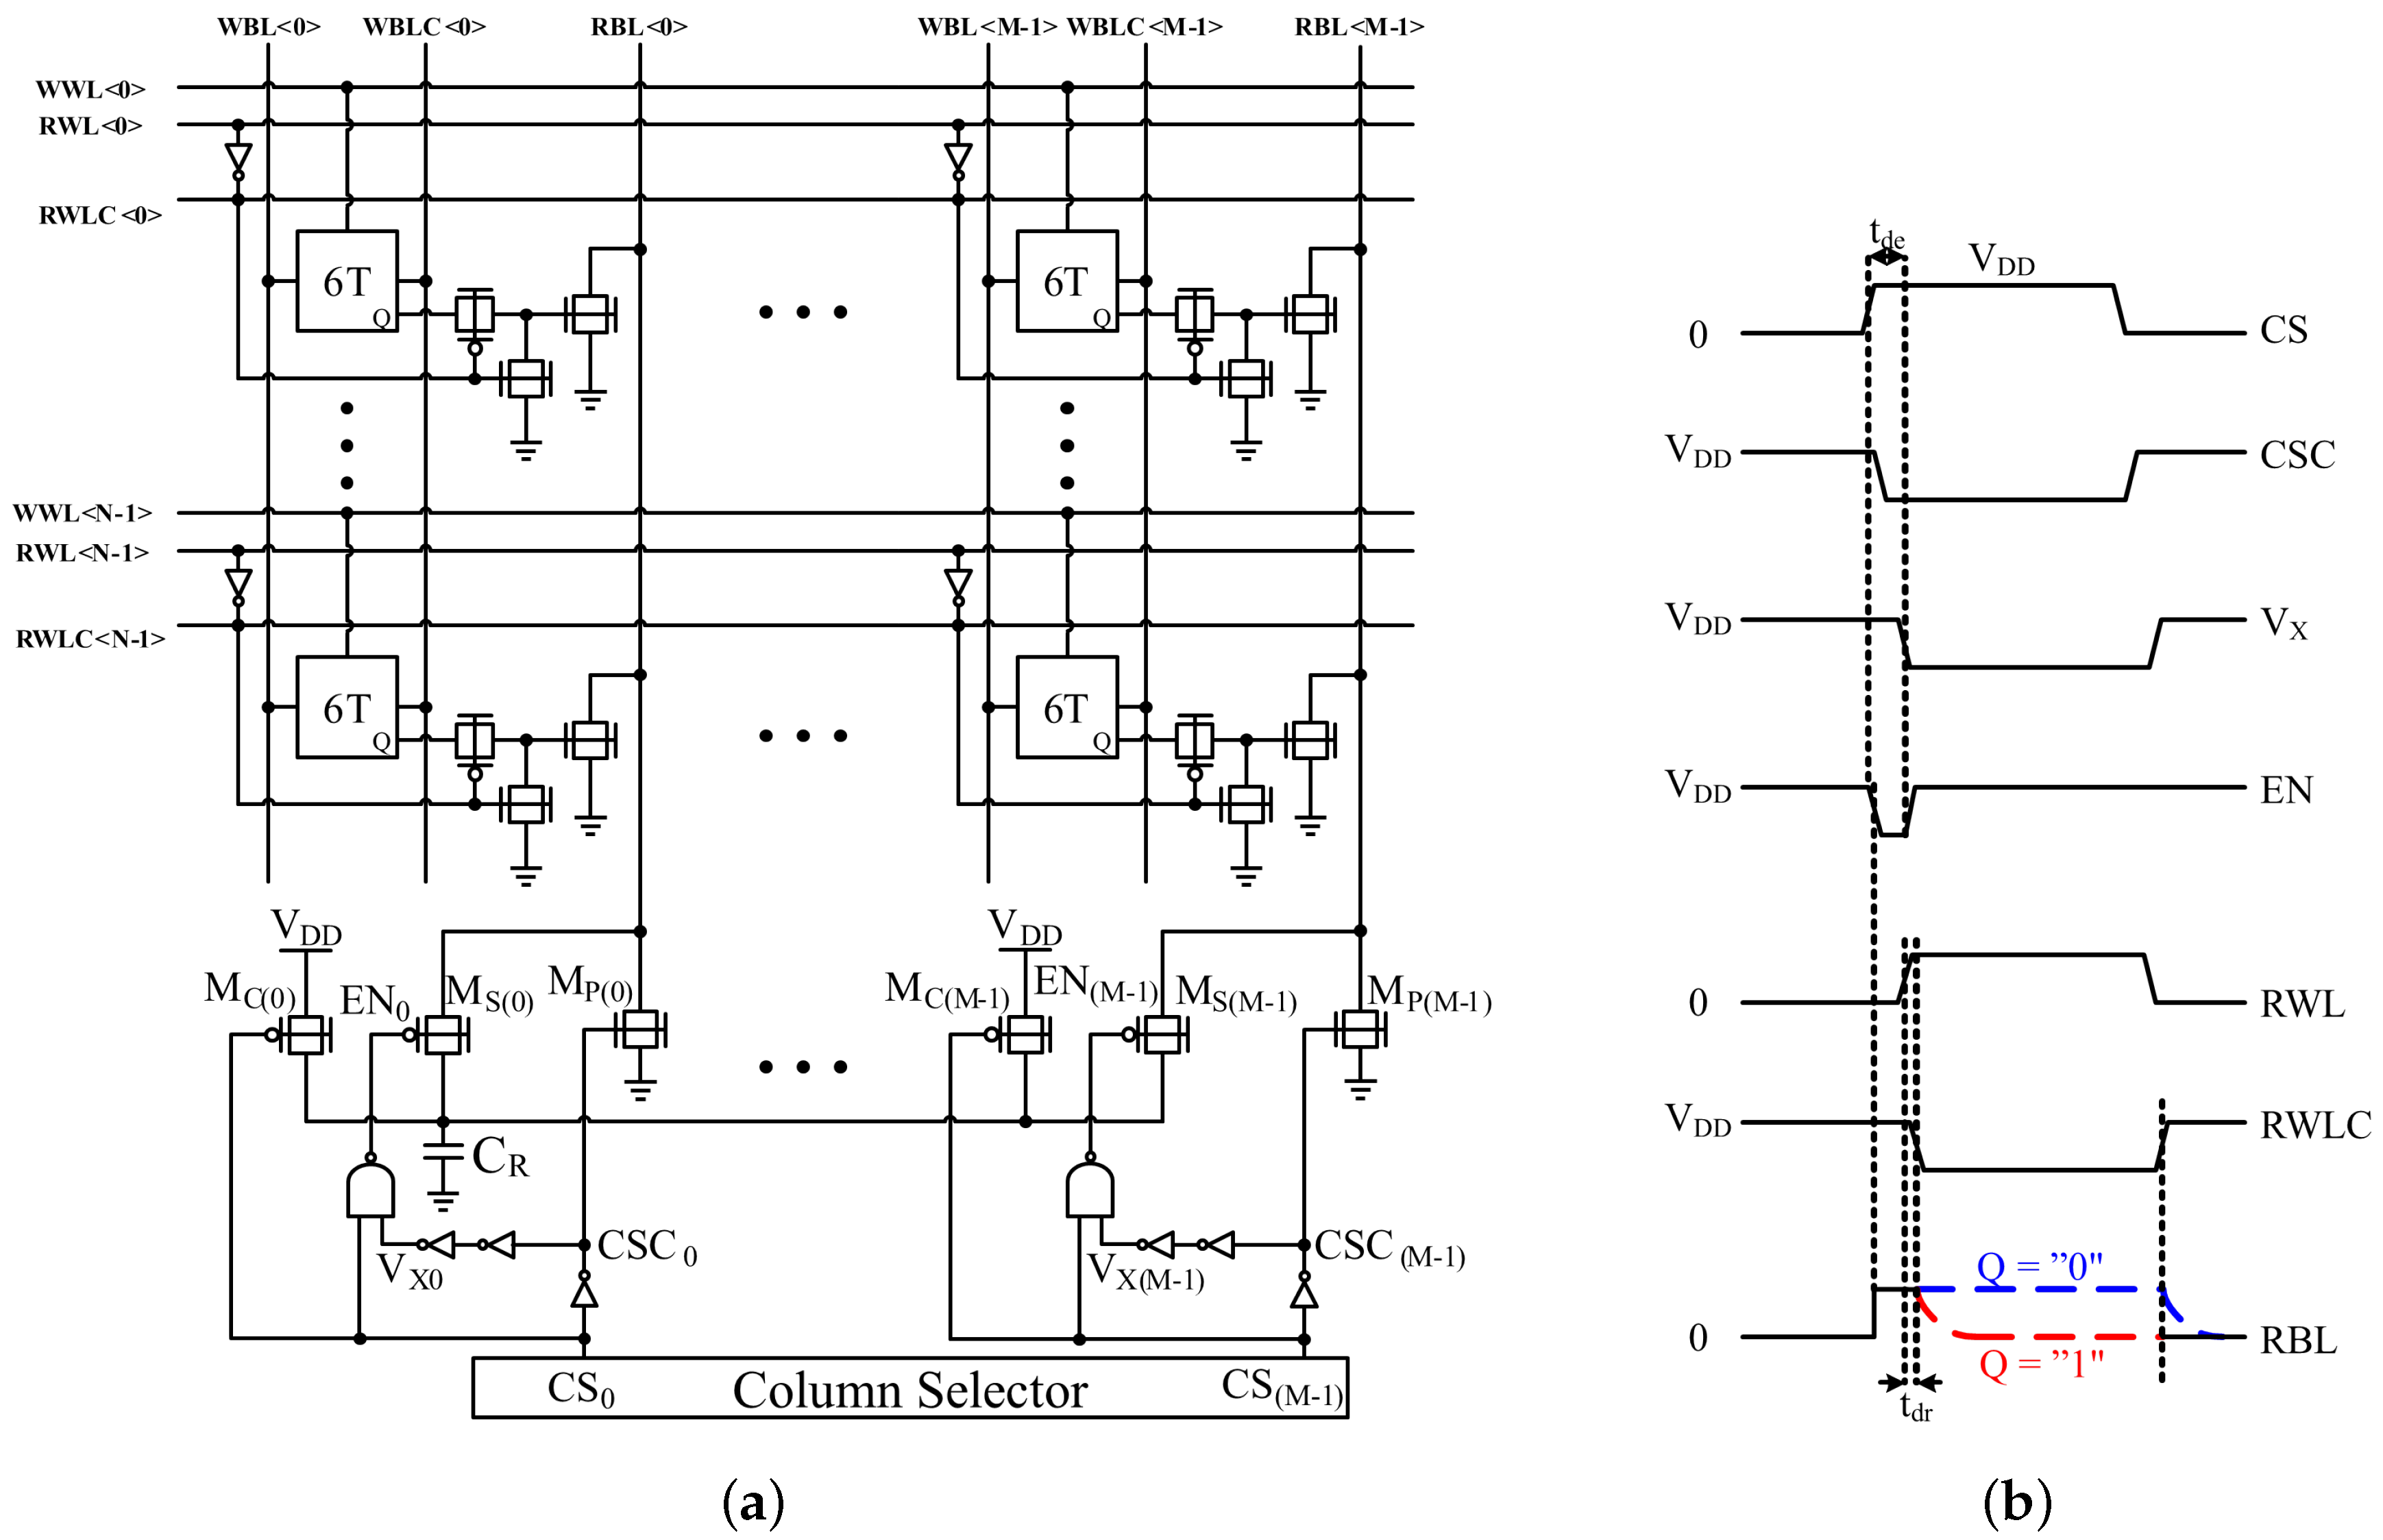 Jlpea Free Full Text Low Power Design For Future Wearable And Microwave Transistor Amplifier A Circuit Diagram B Schematic 06 00020 G005